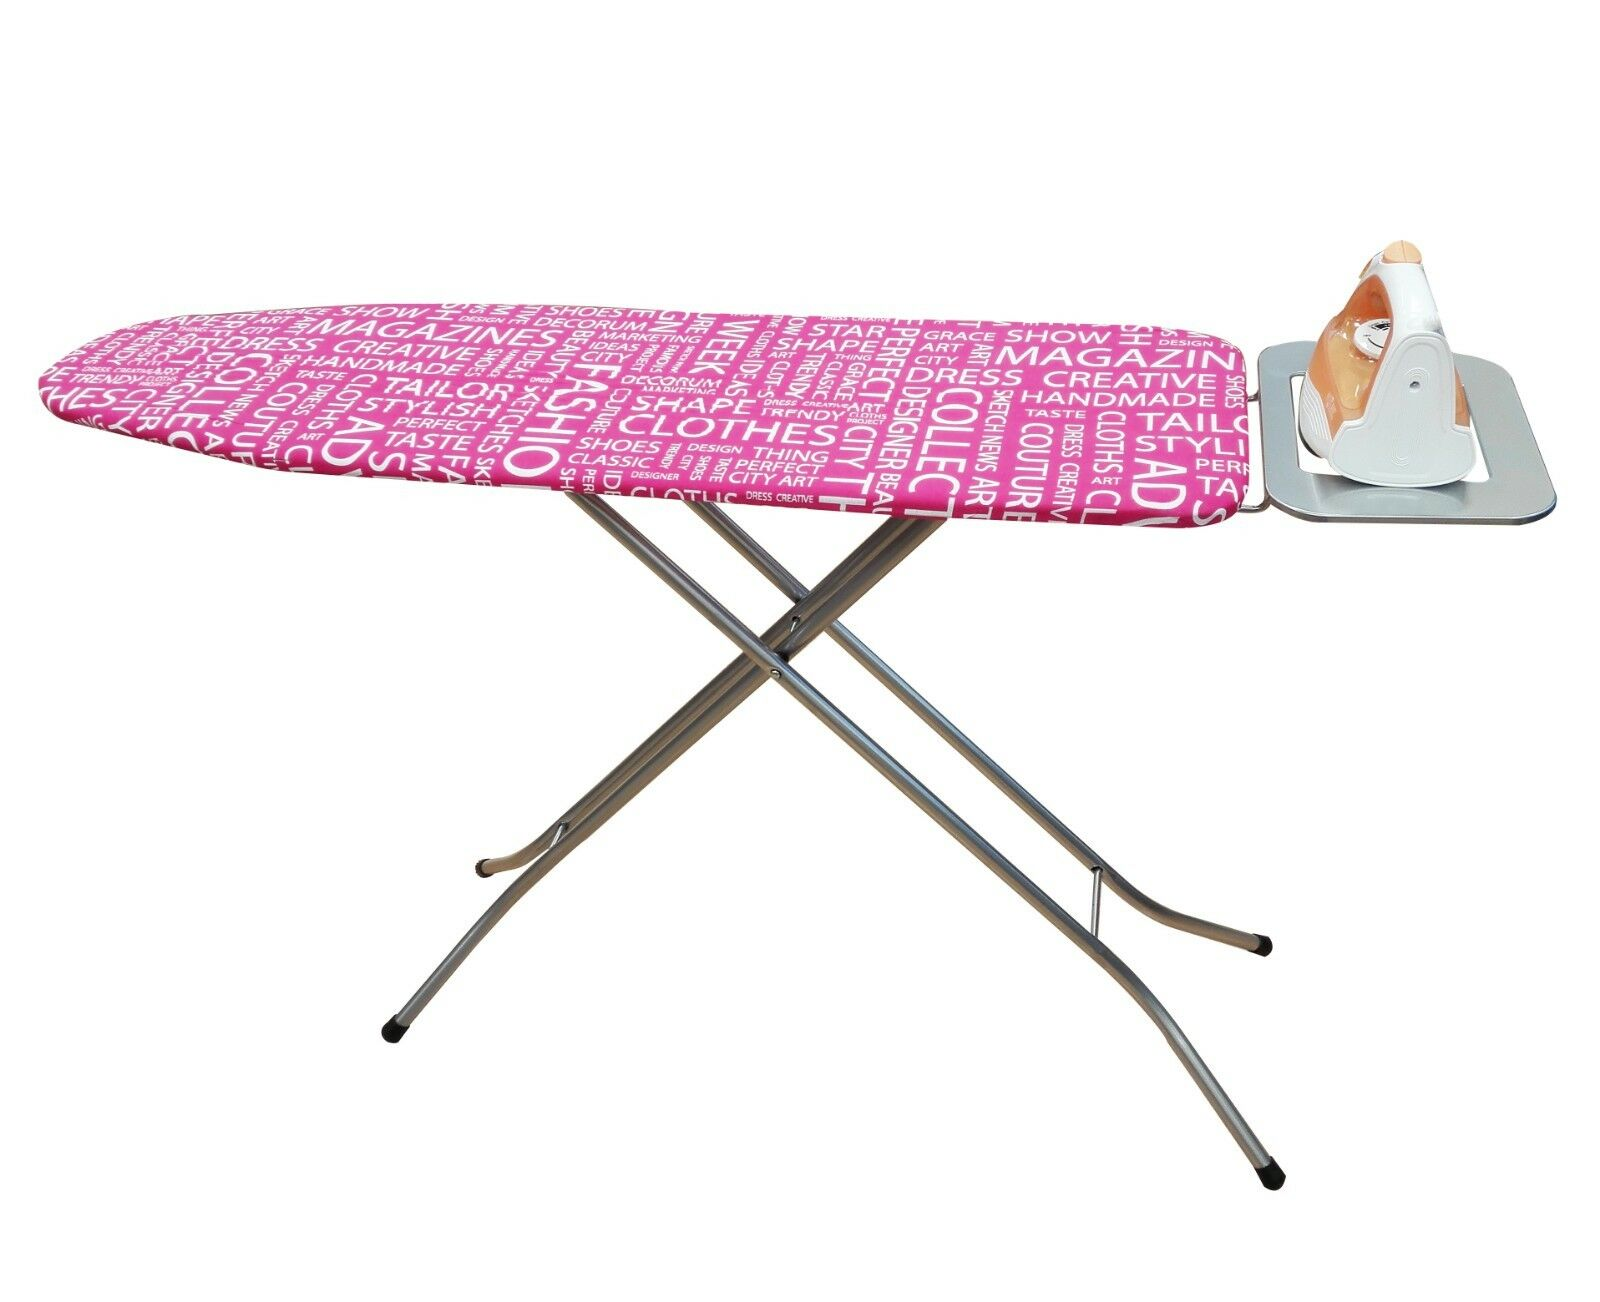 Uniware High Quality Turkey Ironing Board With Iron Rest, La